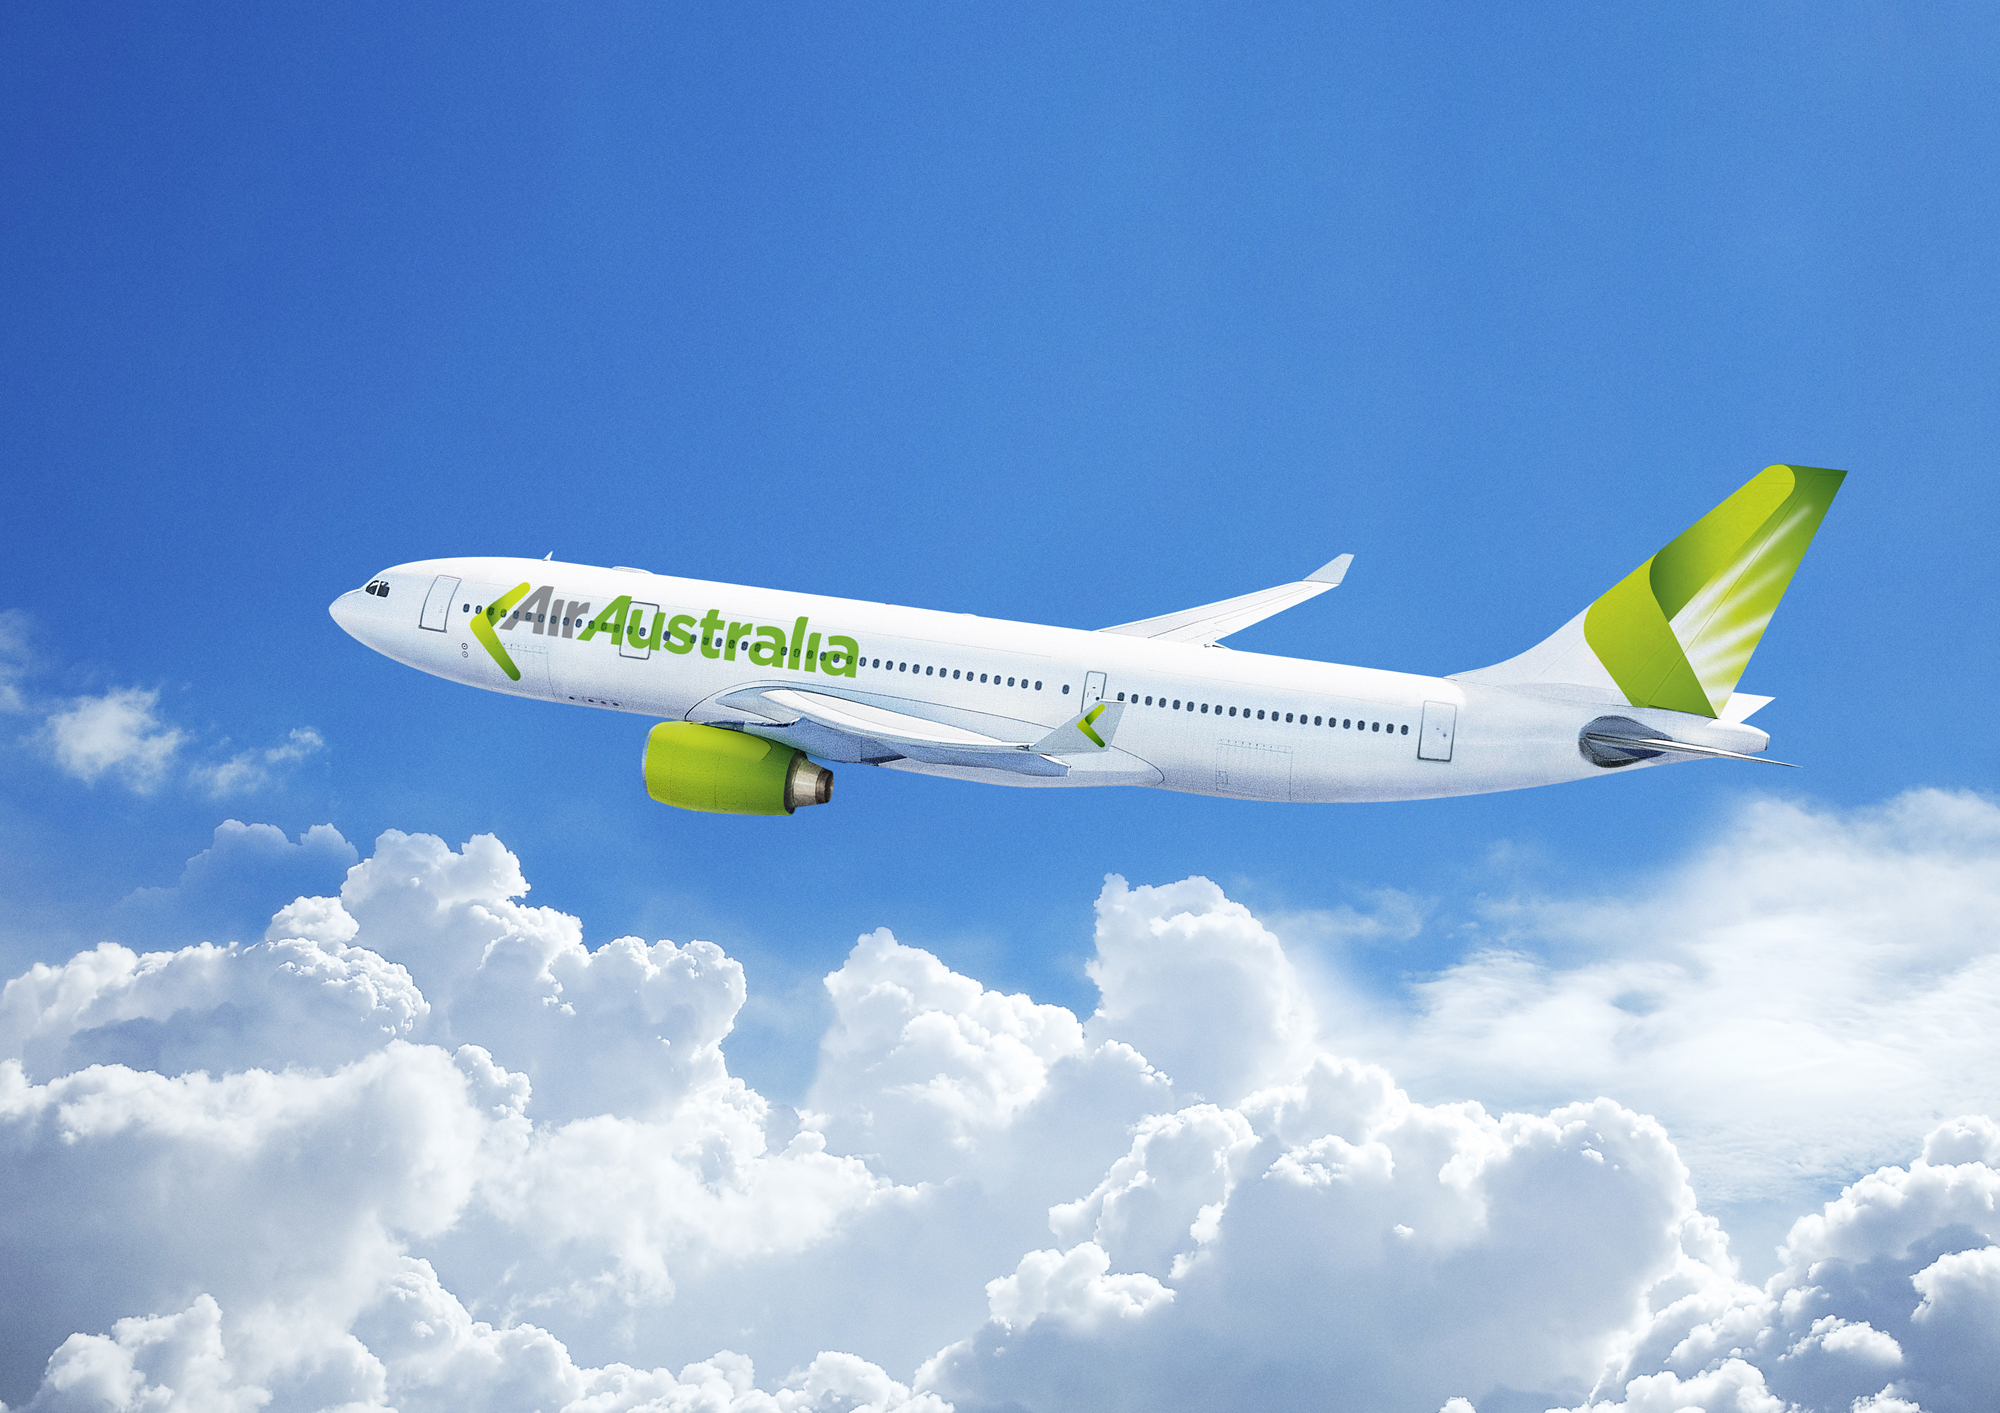 Download this Description Air Australia picture